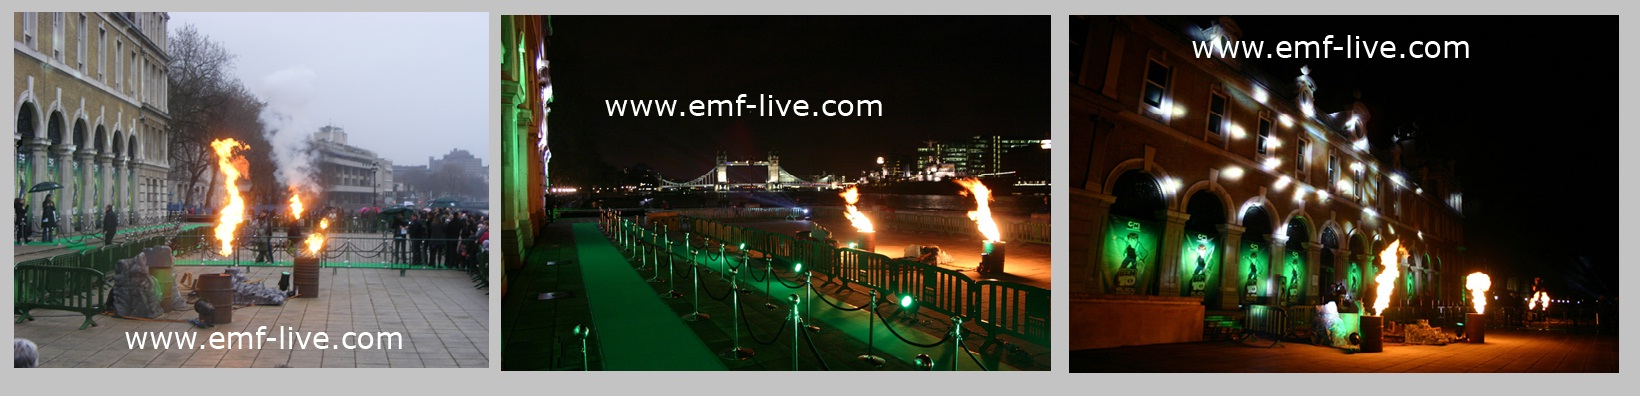 Flame effects for Ben 10 Film Premiere, London.